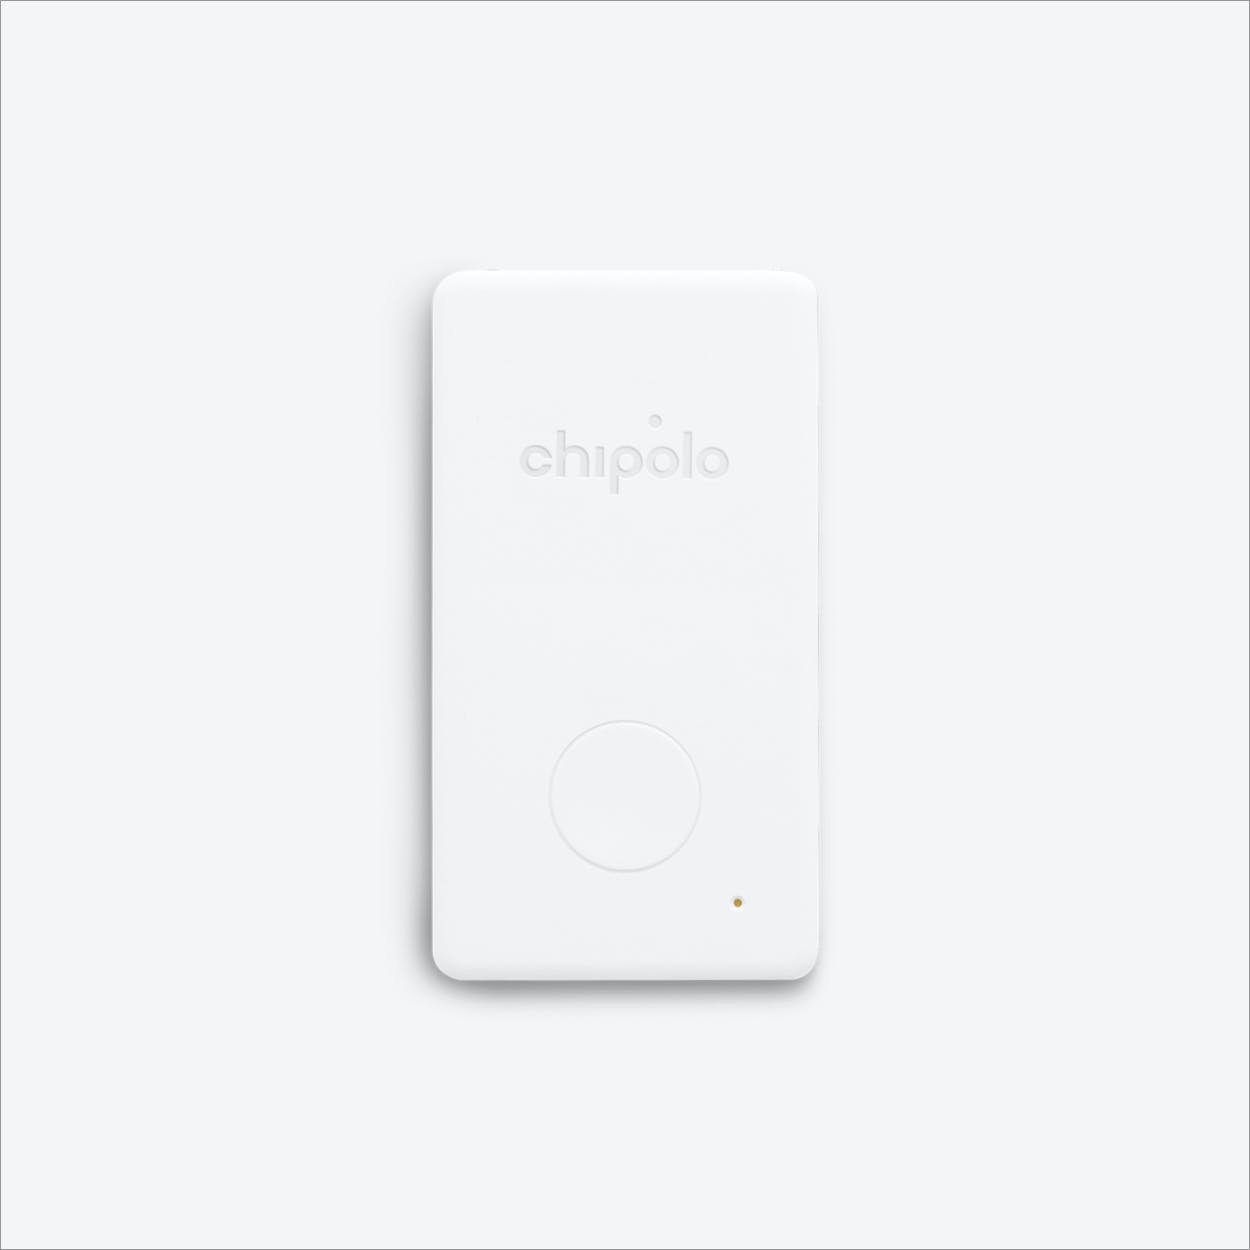 Chipolo Card WHITE